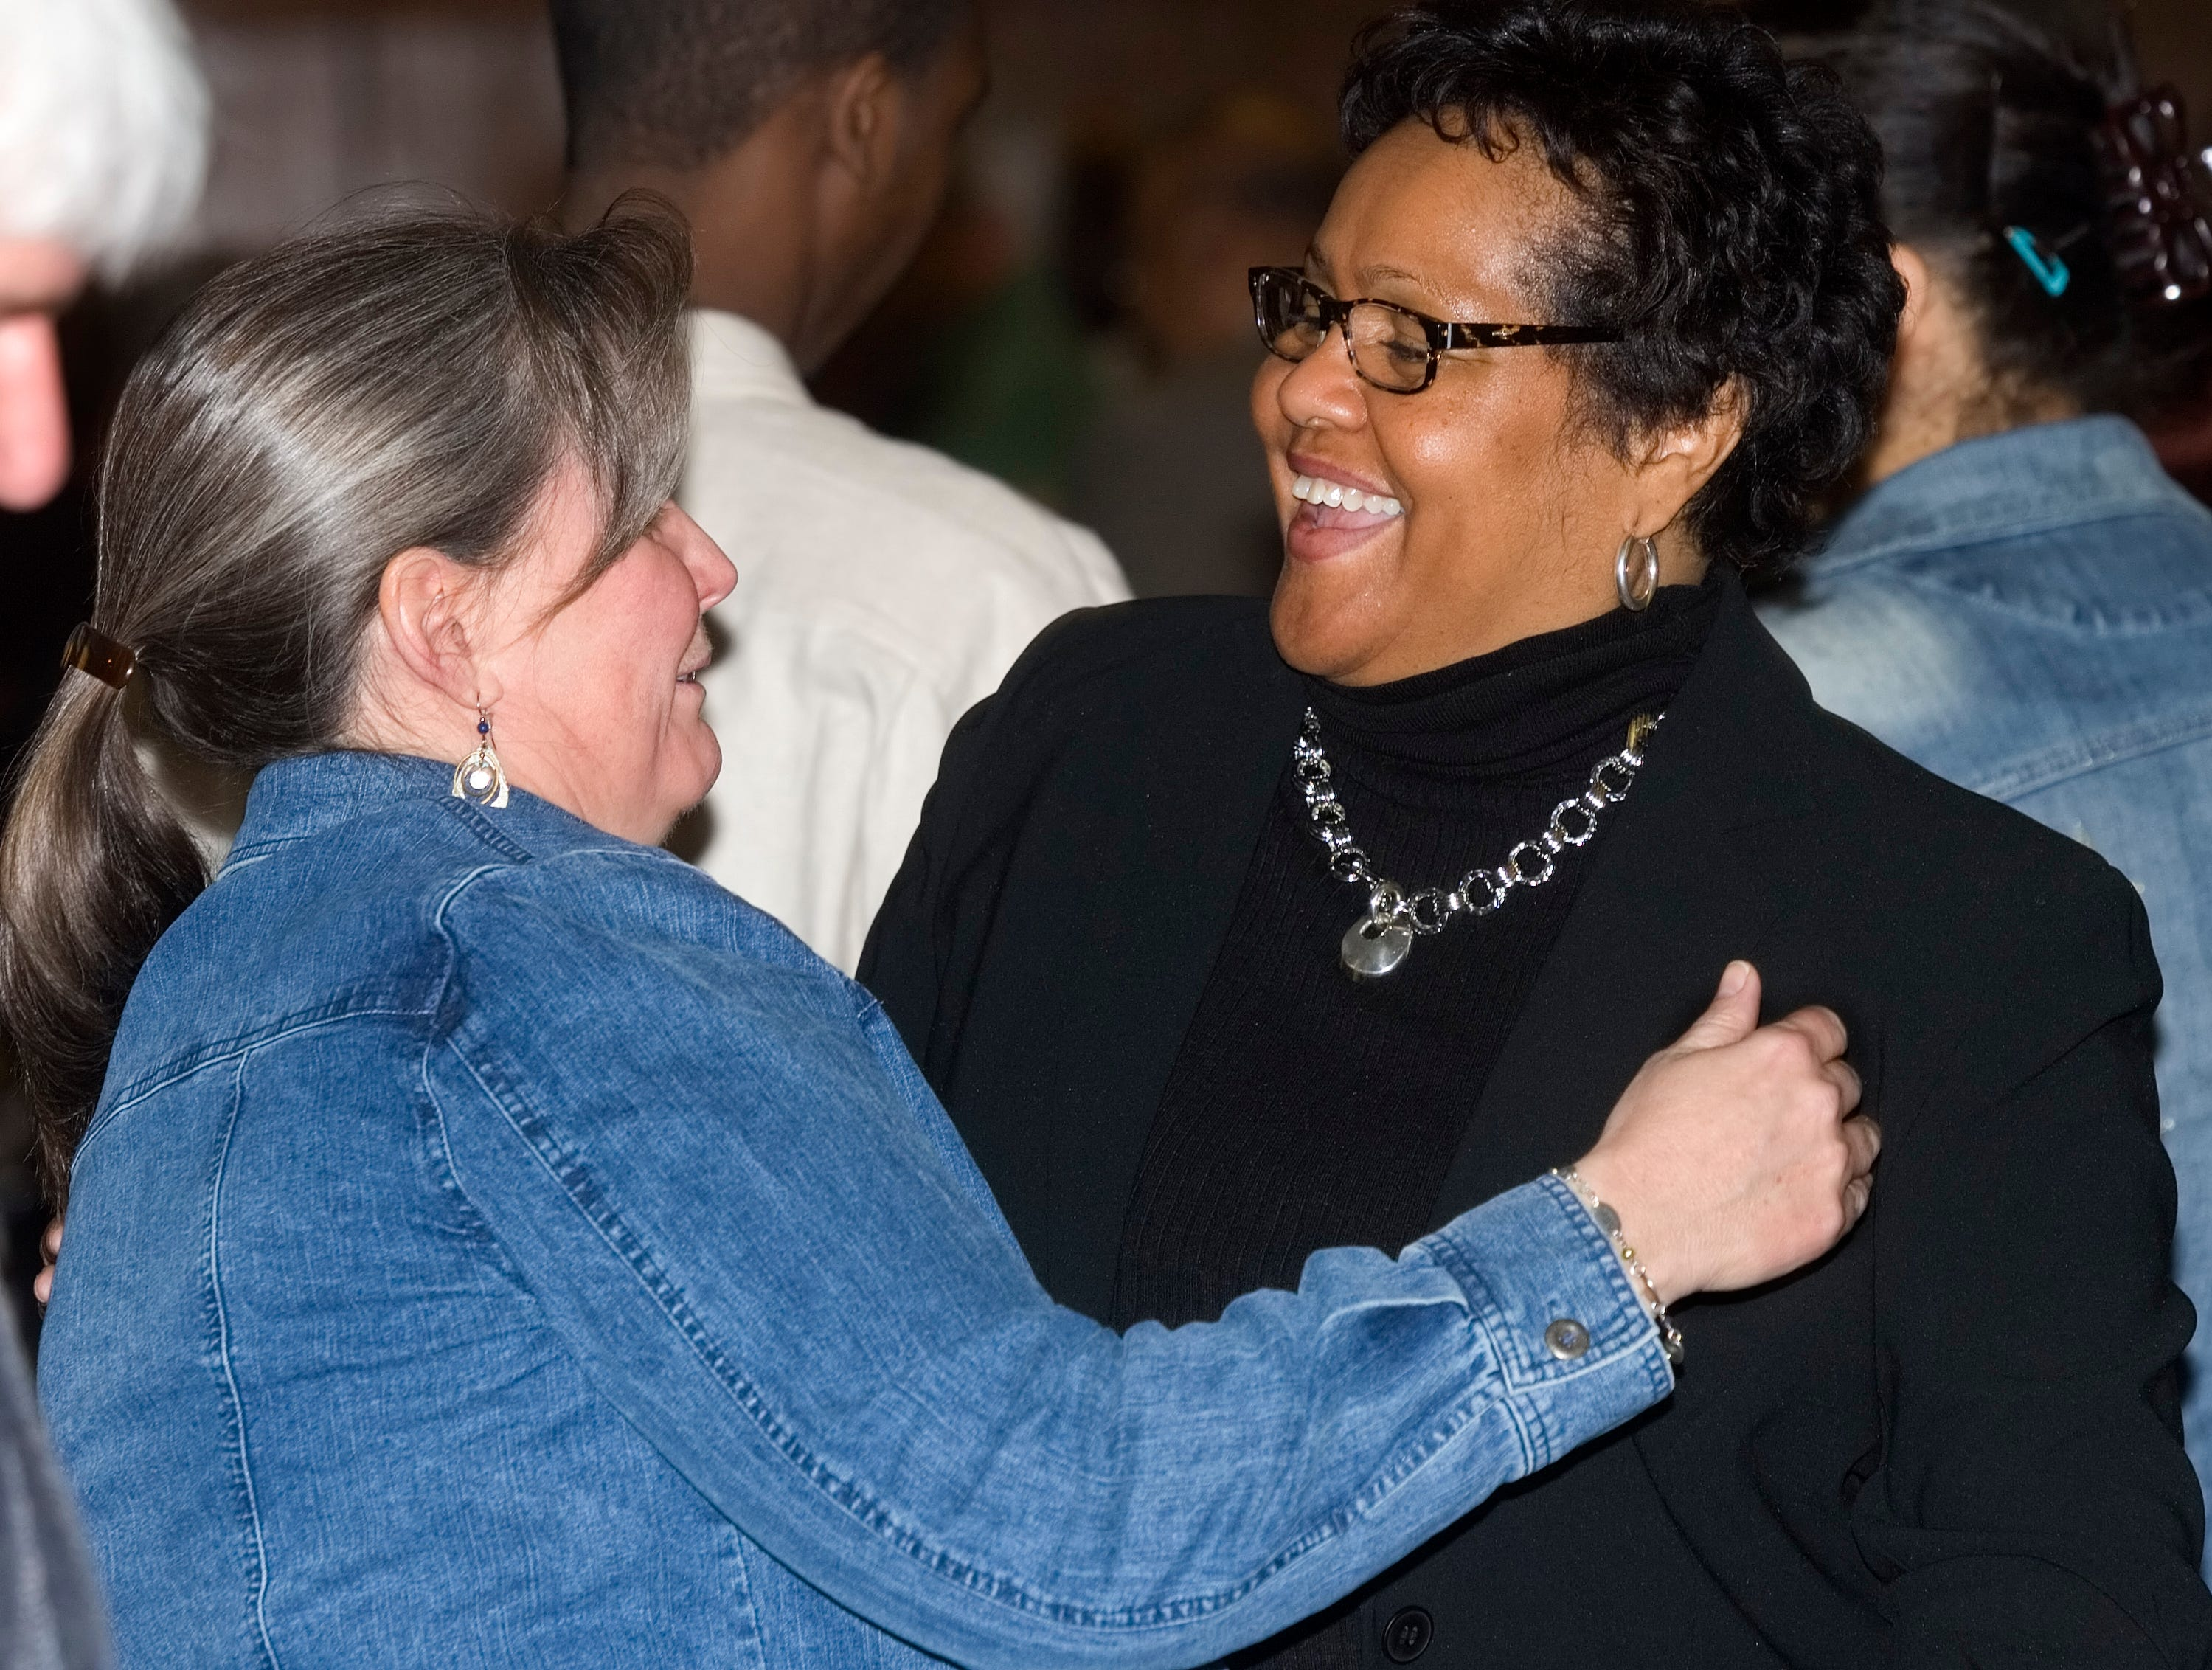 """2009: Penney Forbes of Elmira, left, embraces Deloris Shobe of Painted Post Saturday during the breakfast to honor the Rev. Dr. Martin Luther King Jr. at Radisson hotel in Corning. """"I just met her today,"""" said Forbes of Shobe. """"We had a great conversation here."""""""